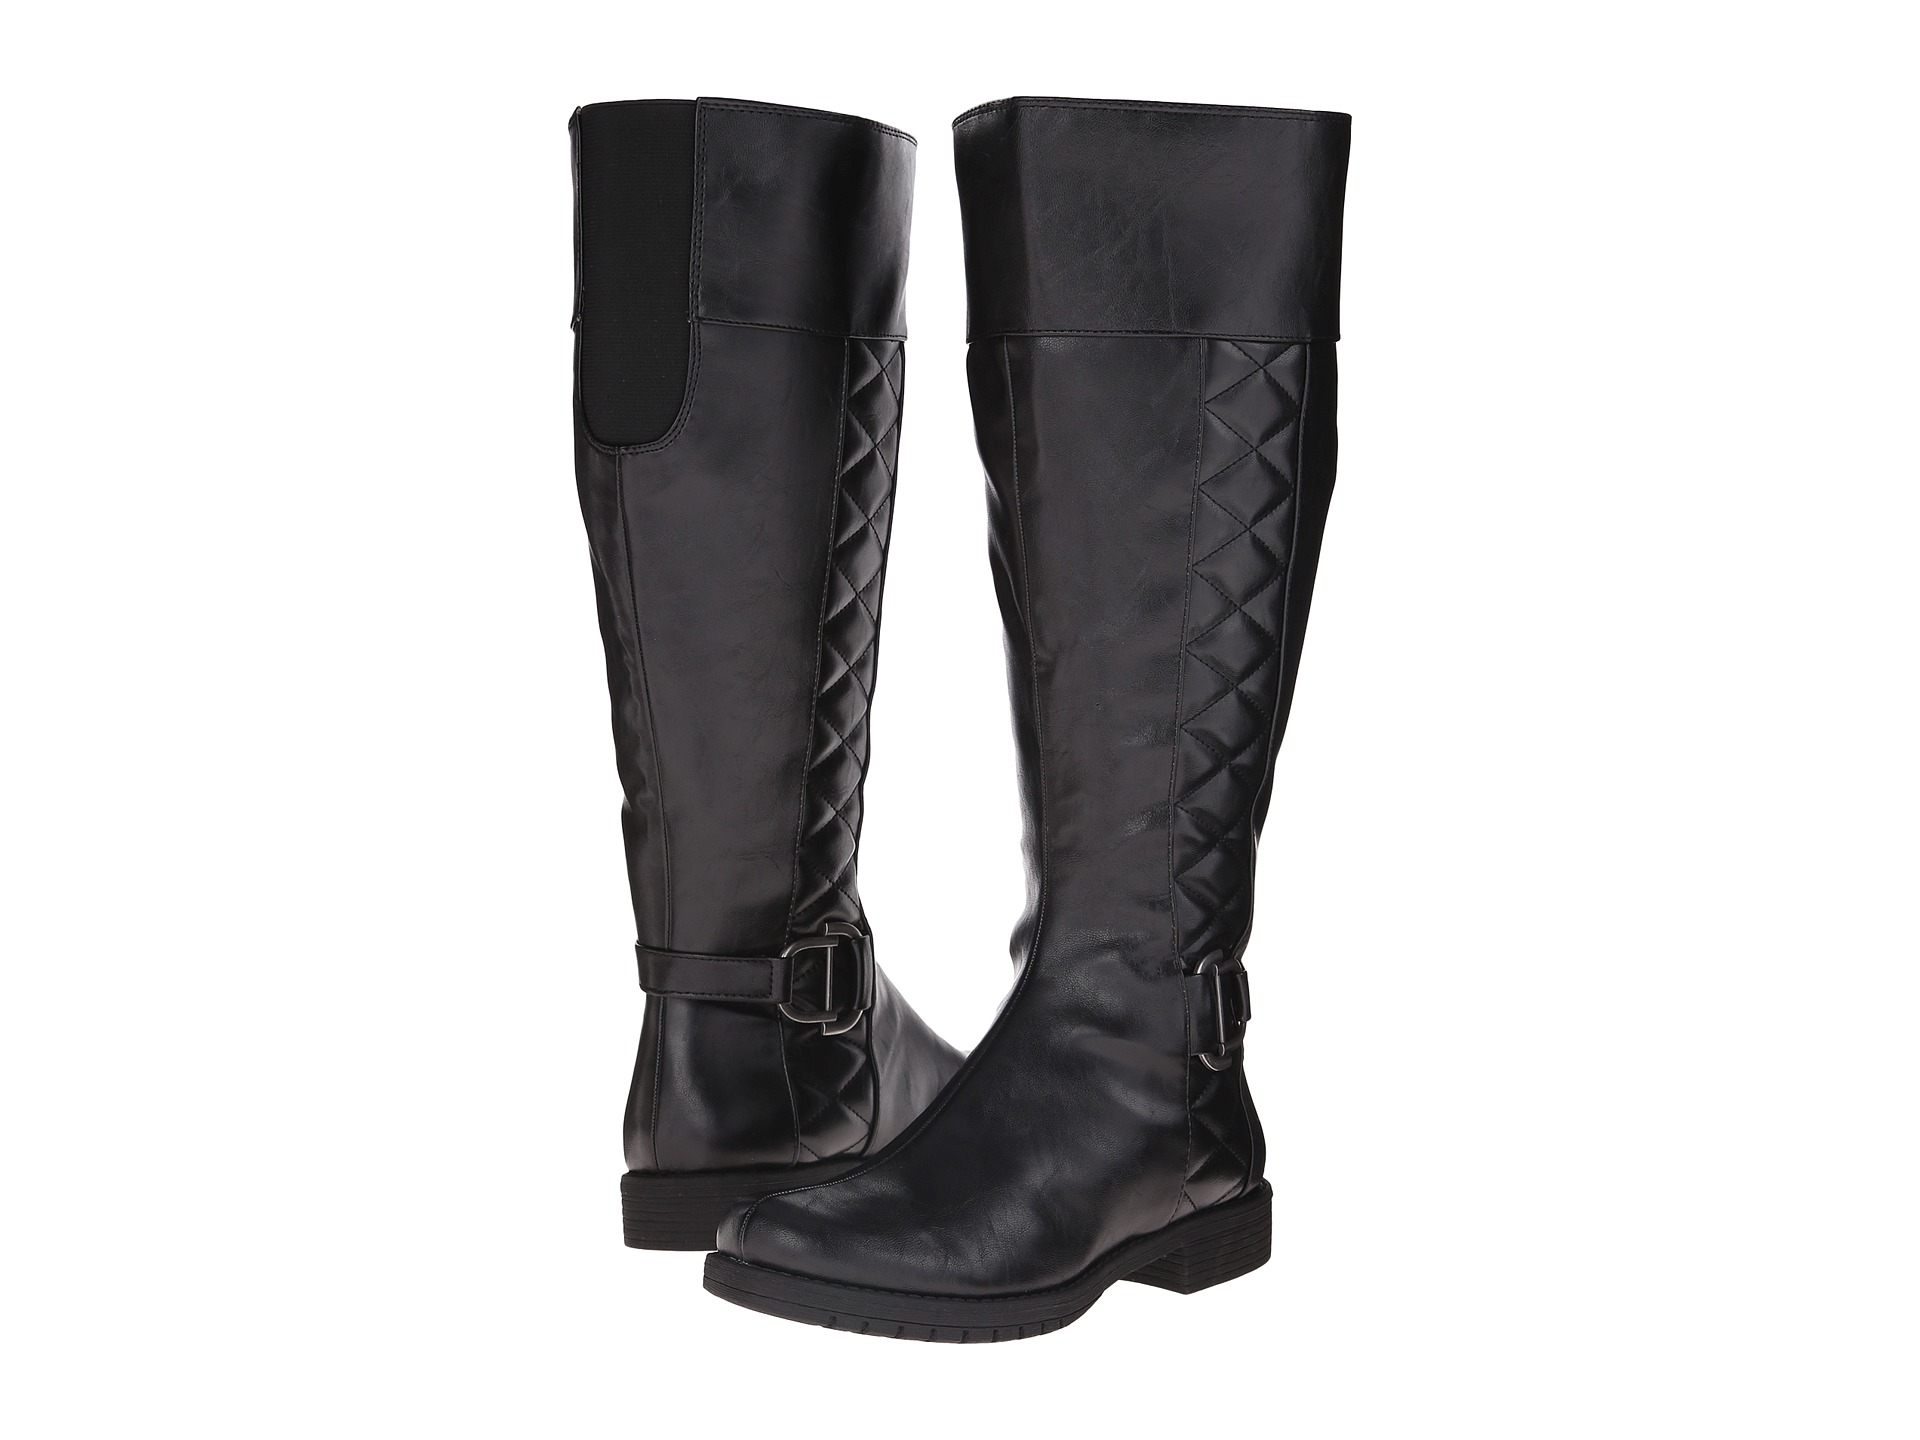 extra wide calf boots, Shoes at 6pm.com